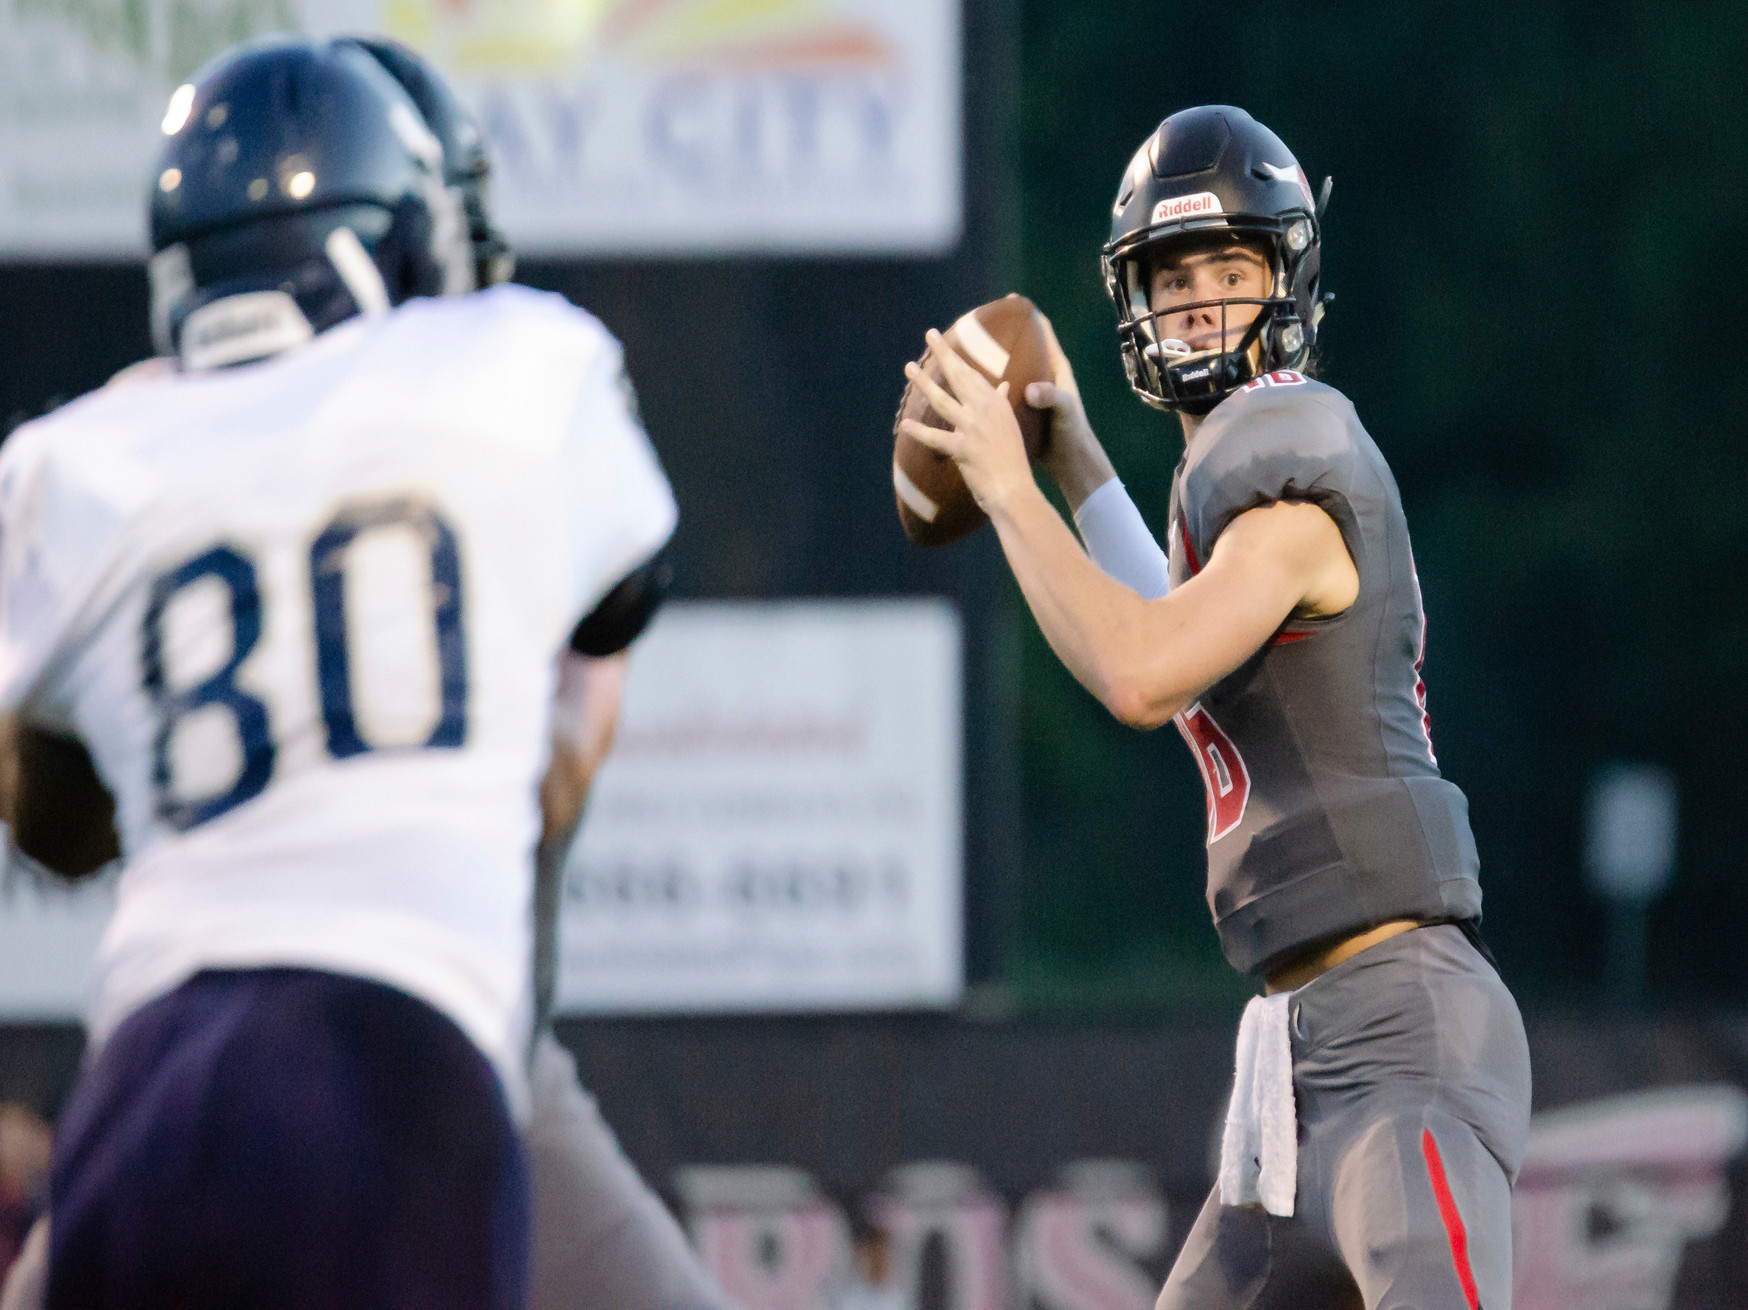 Jackson Burkhalter spots a Toro receiver downfield at Spanish Fort.